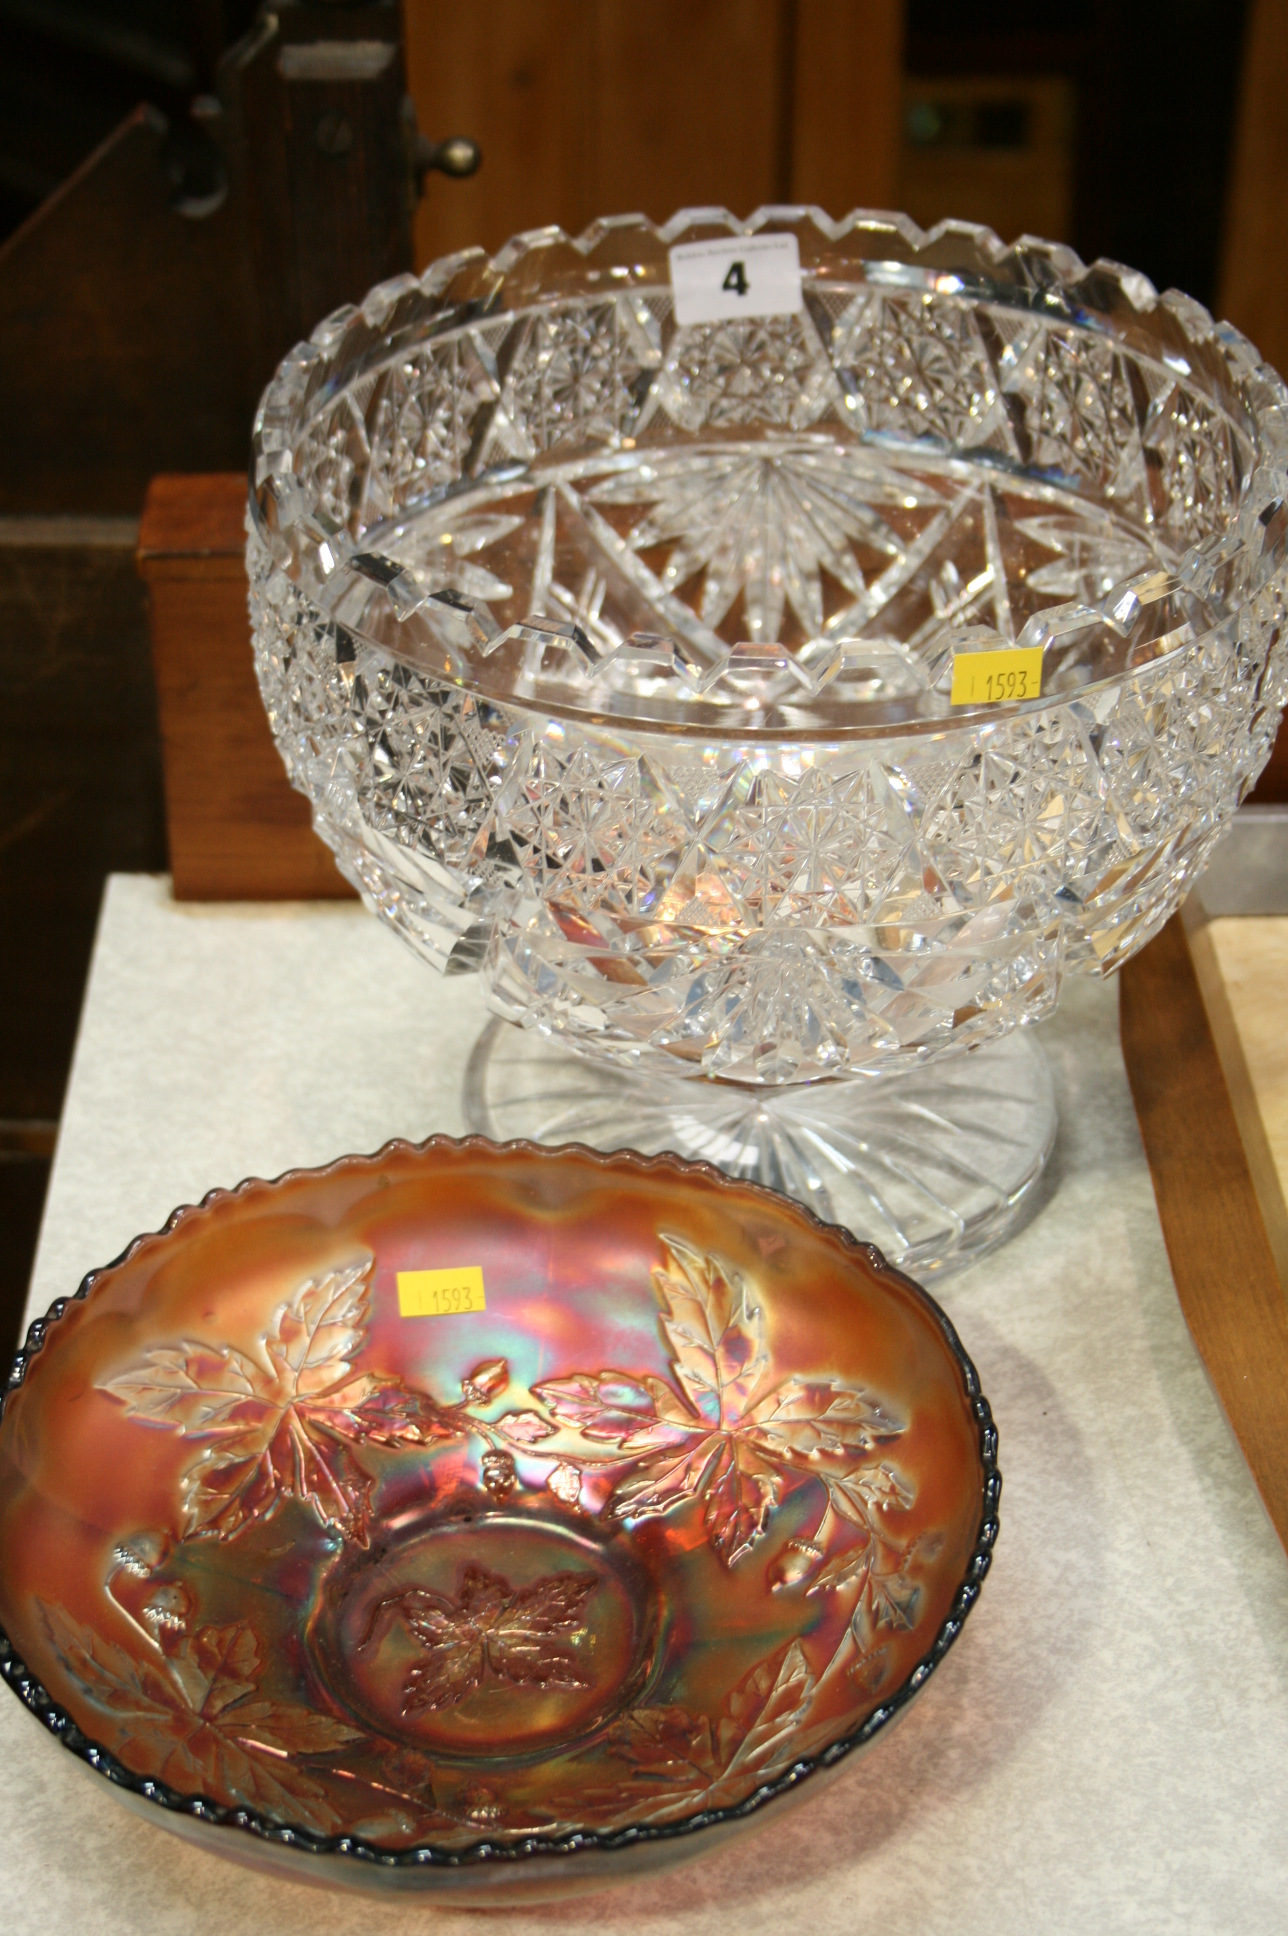 Lot 4 - Cut glass bowl etc.